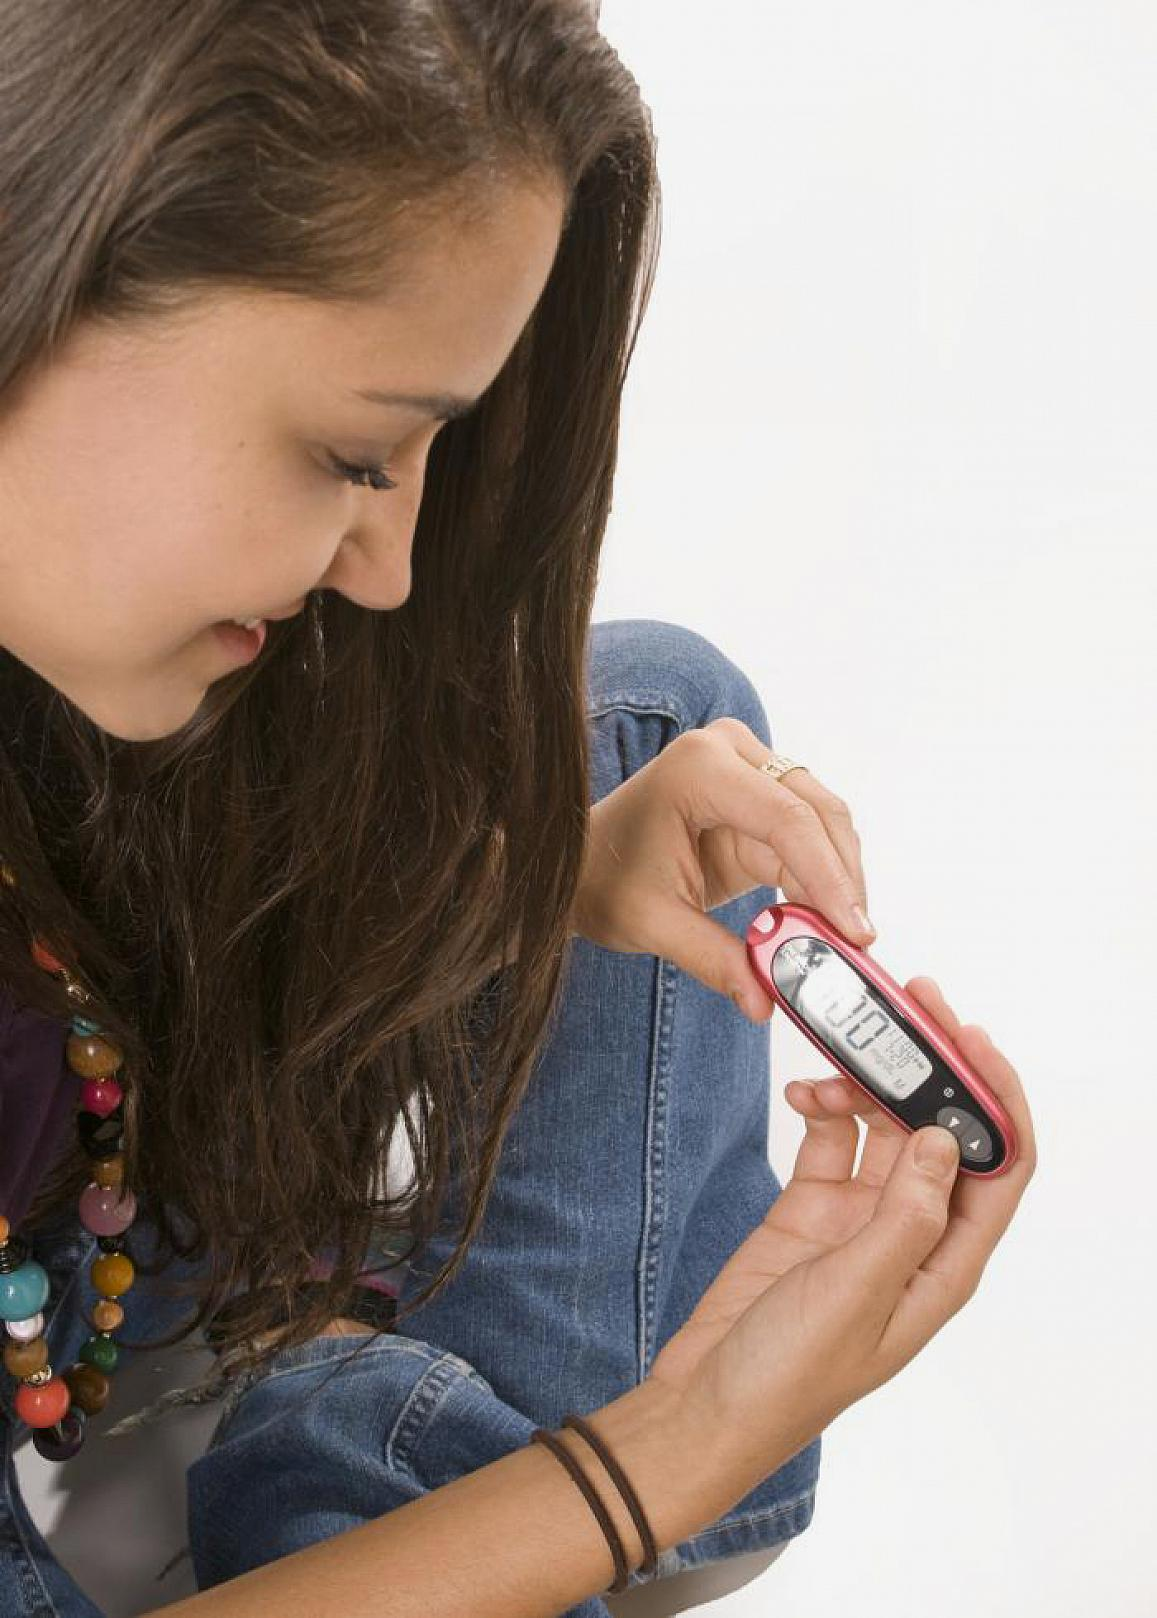 A girl with diabetes checks her blood glucose level.